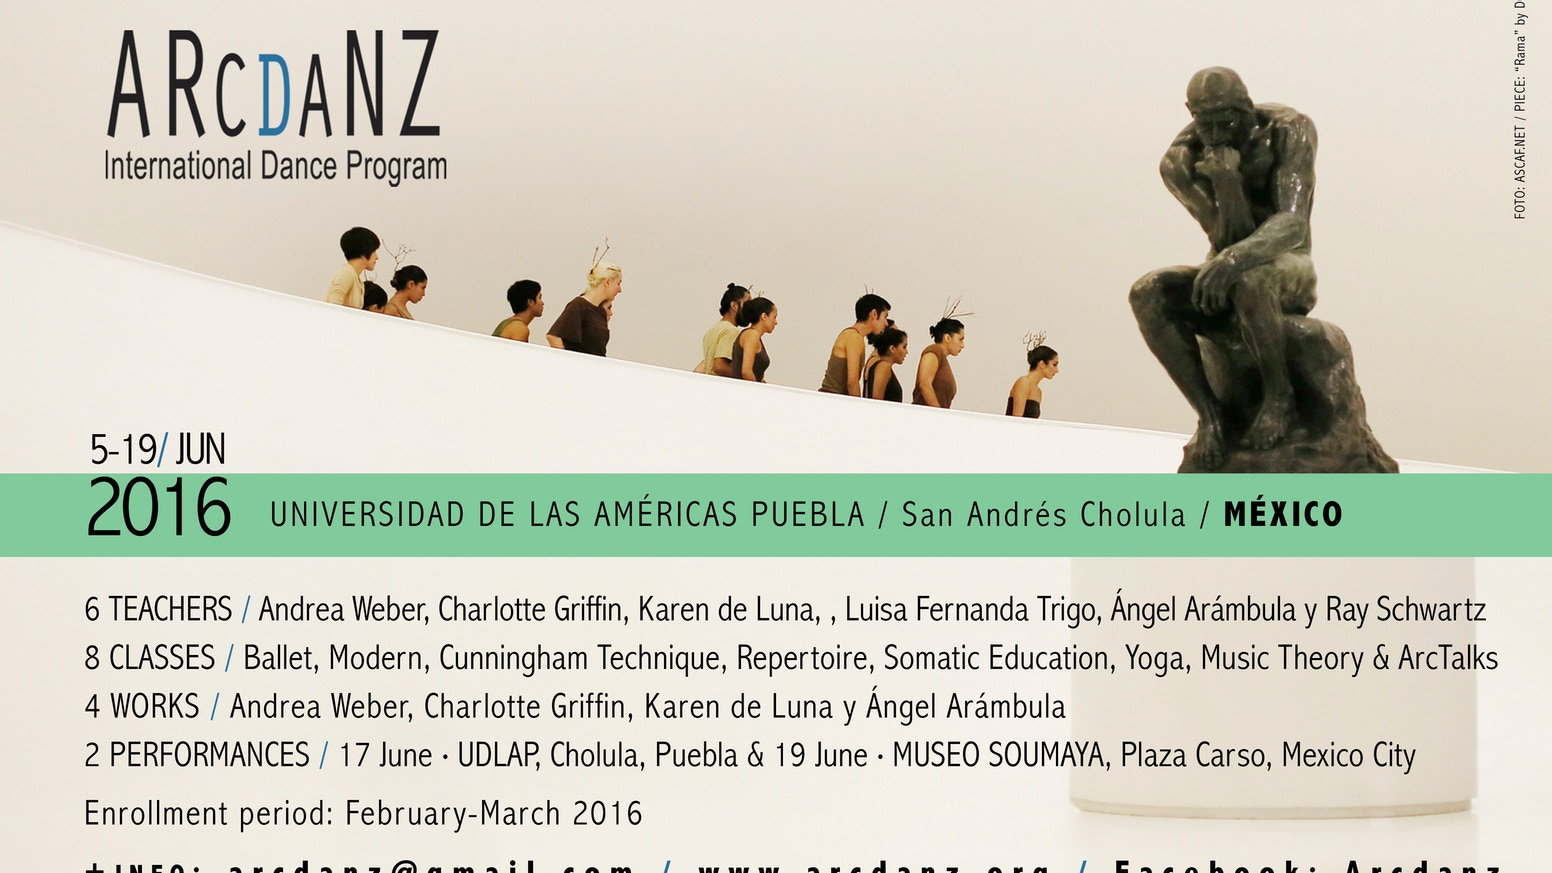 Bring Andrea Weber to teach Cunningham Technique® & Repertory, Angel Arambula of Lux Boreal & U.S.A. students to Mexico this summer!